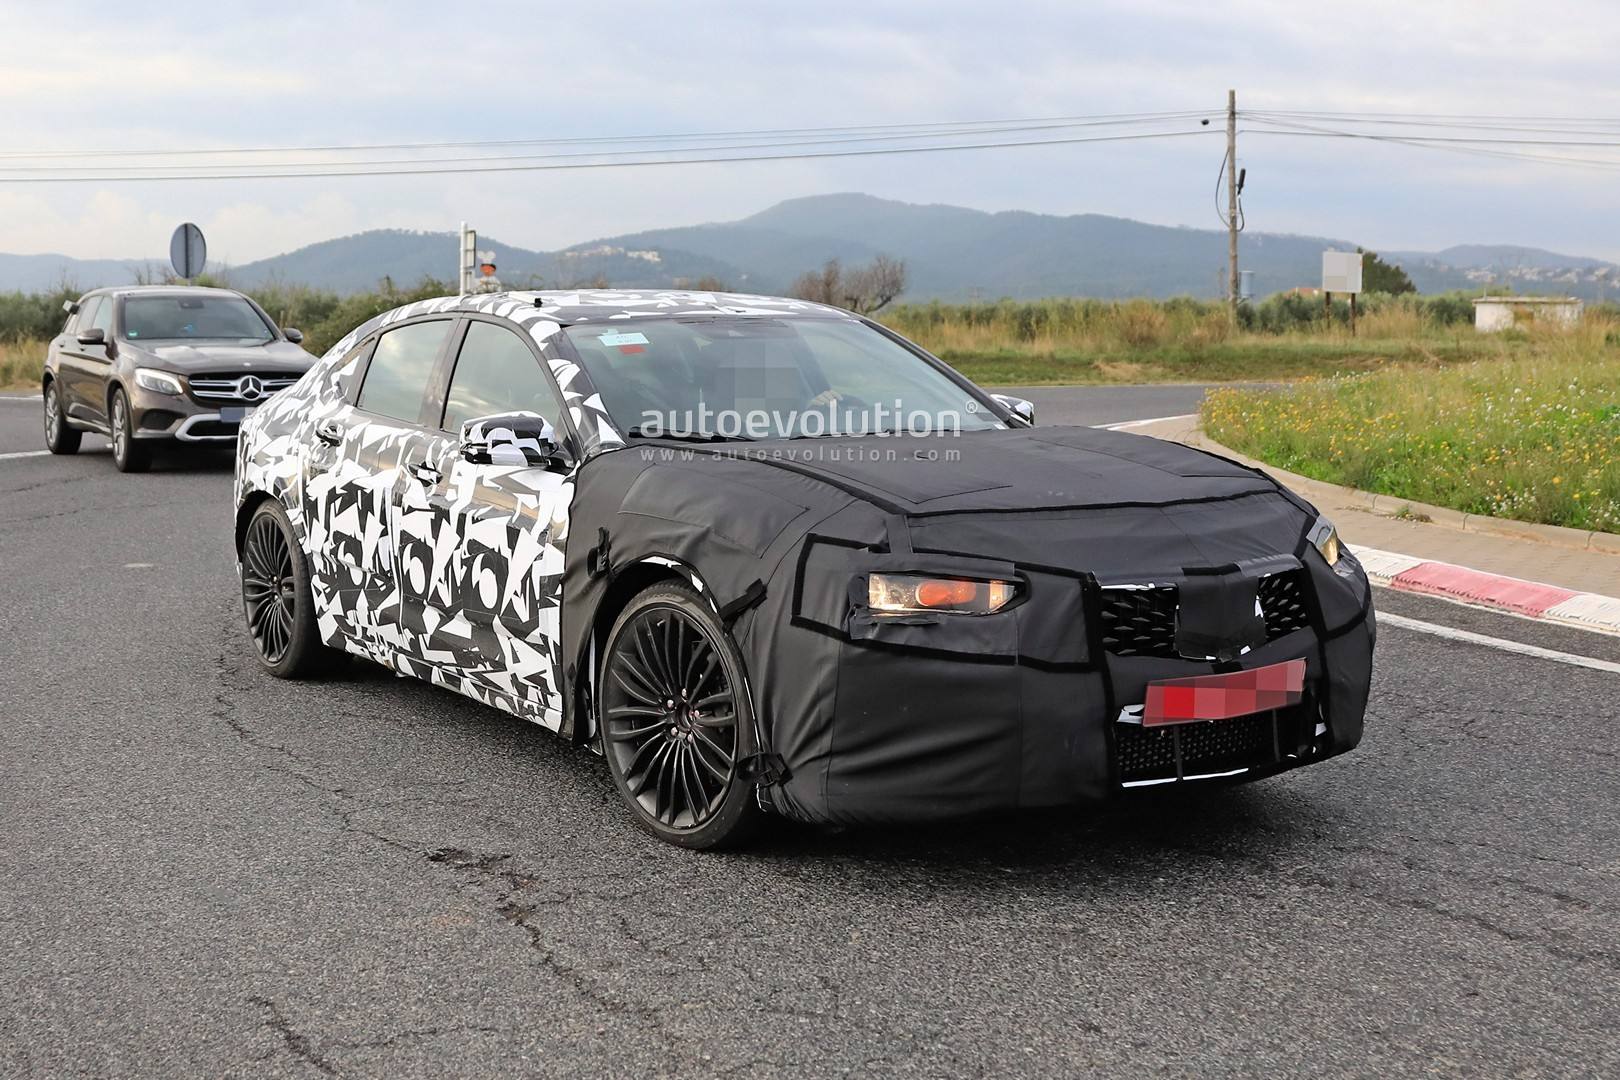 2020 Acura Tlx Type S Spied With Audi S4 And Amg C43 V6 Turbo Rumored